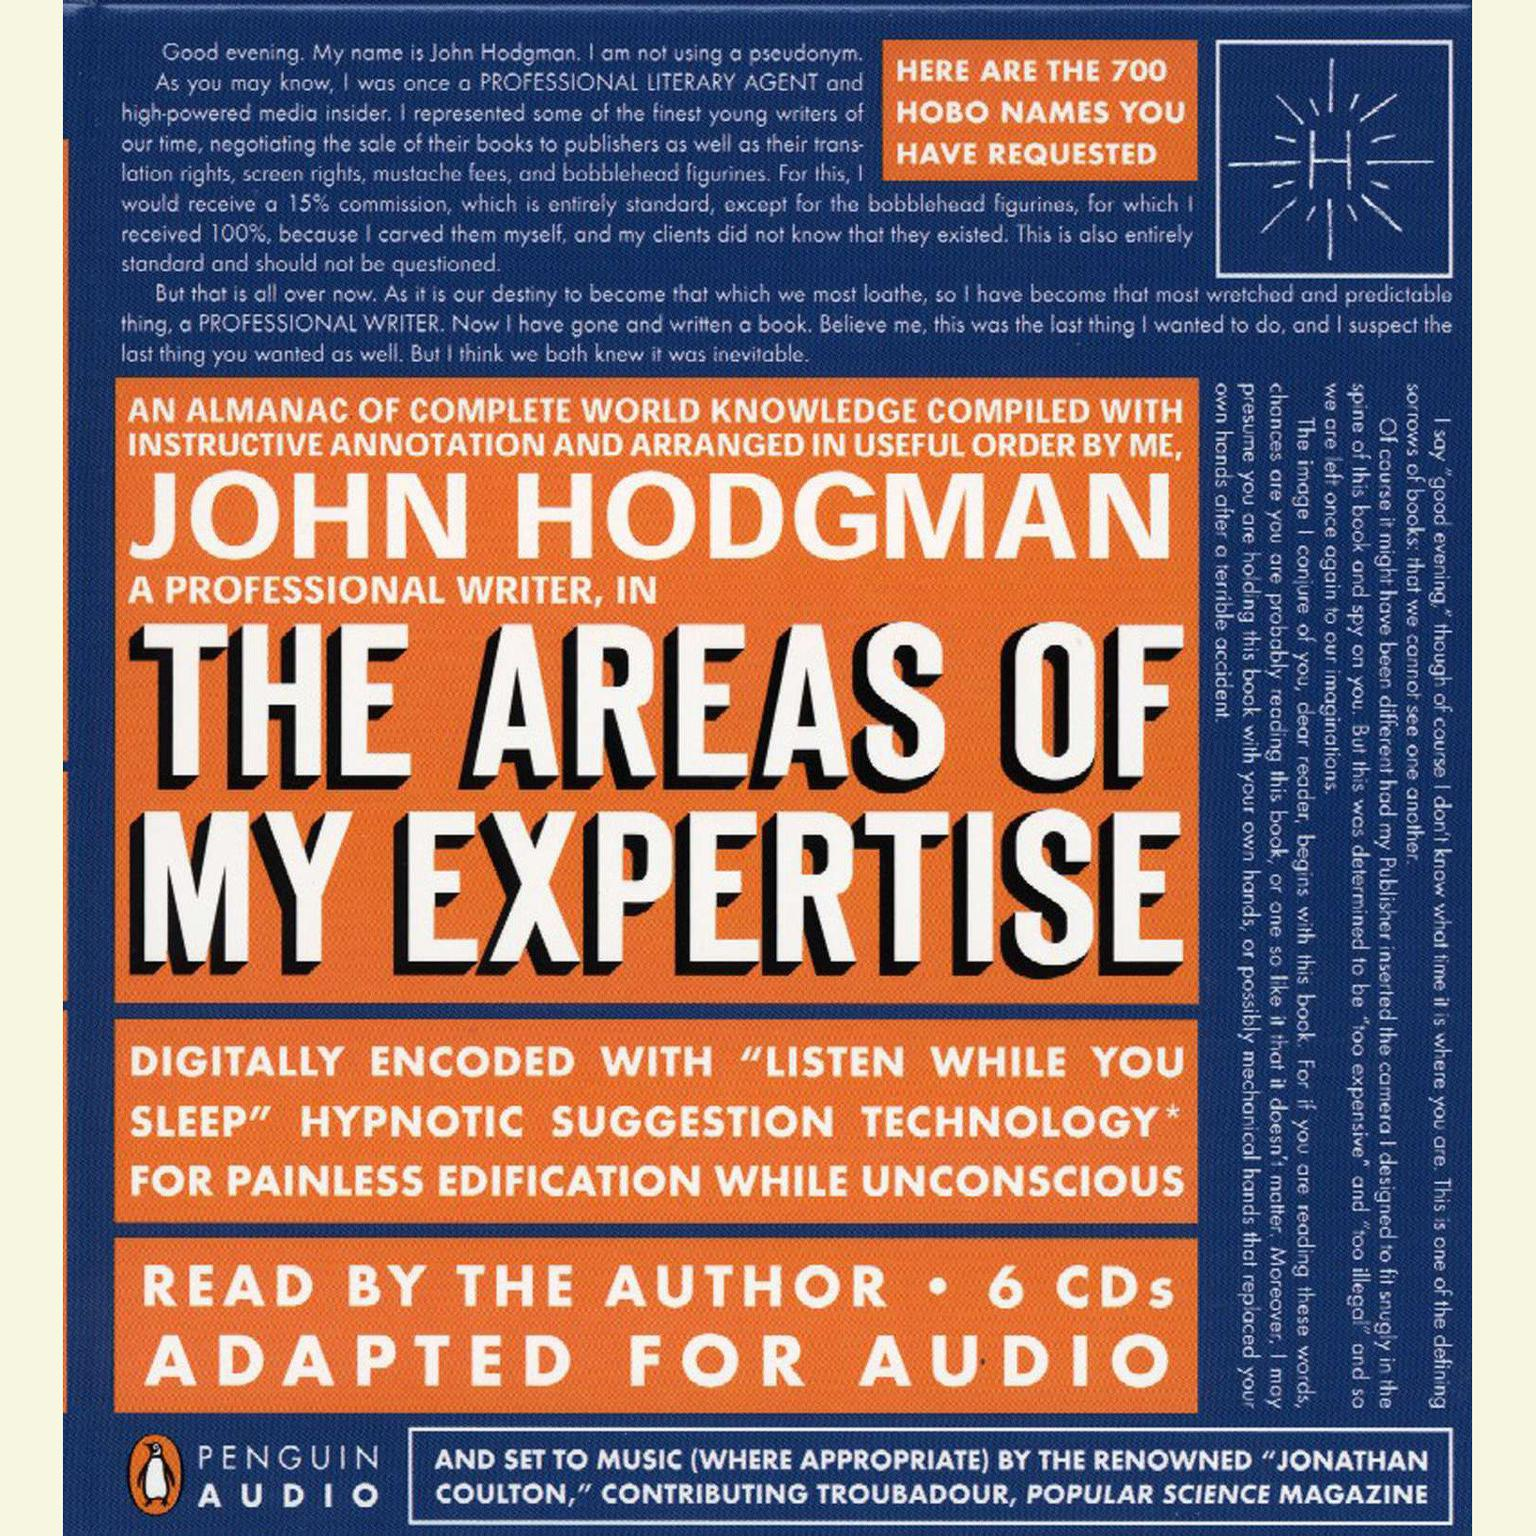 Printable The Areas of My Expertise: An Almanac of Complete World Knowledge Compiled with Instructive Annotation and Arranged in Useful Order Audiobook Cover Art